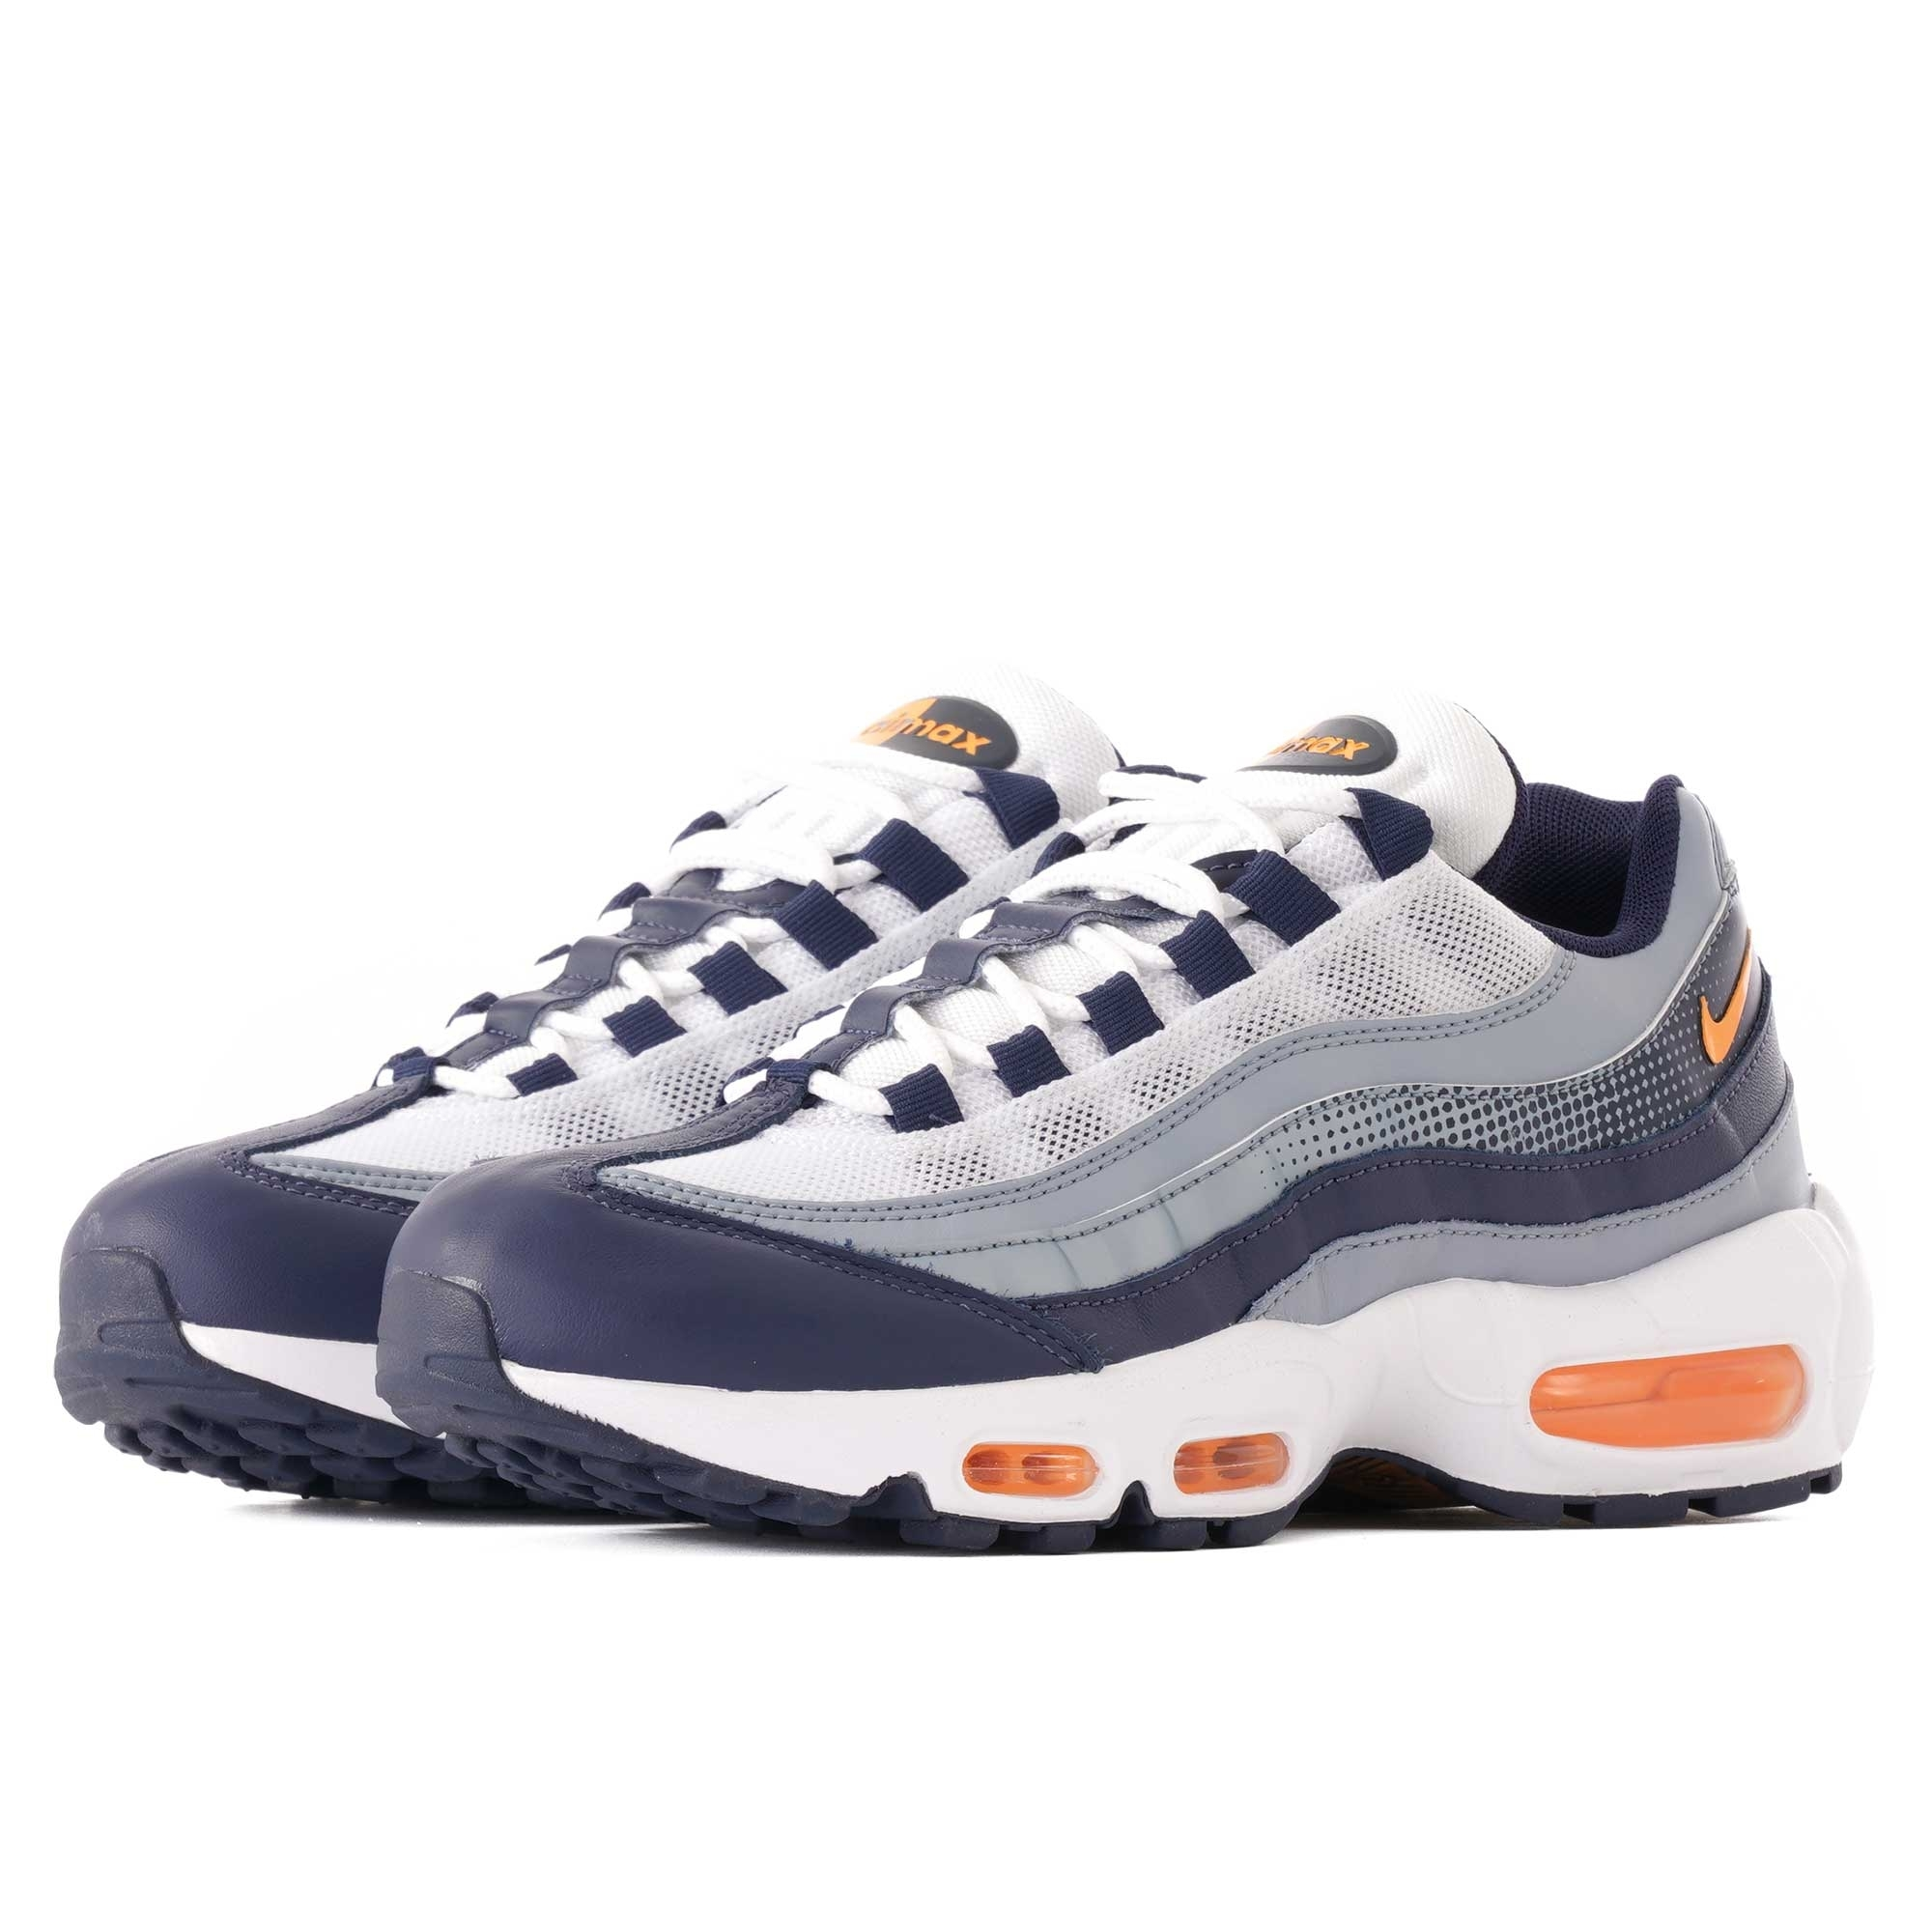 798d21e7f7463 Nike Air Max 95 SE | Midnight Navy & Laser Orange | AJ2018-401